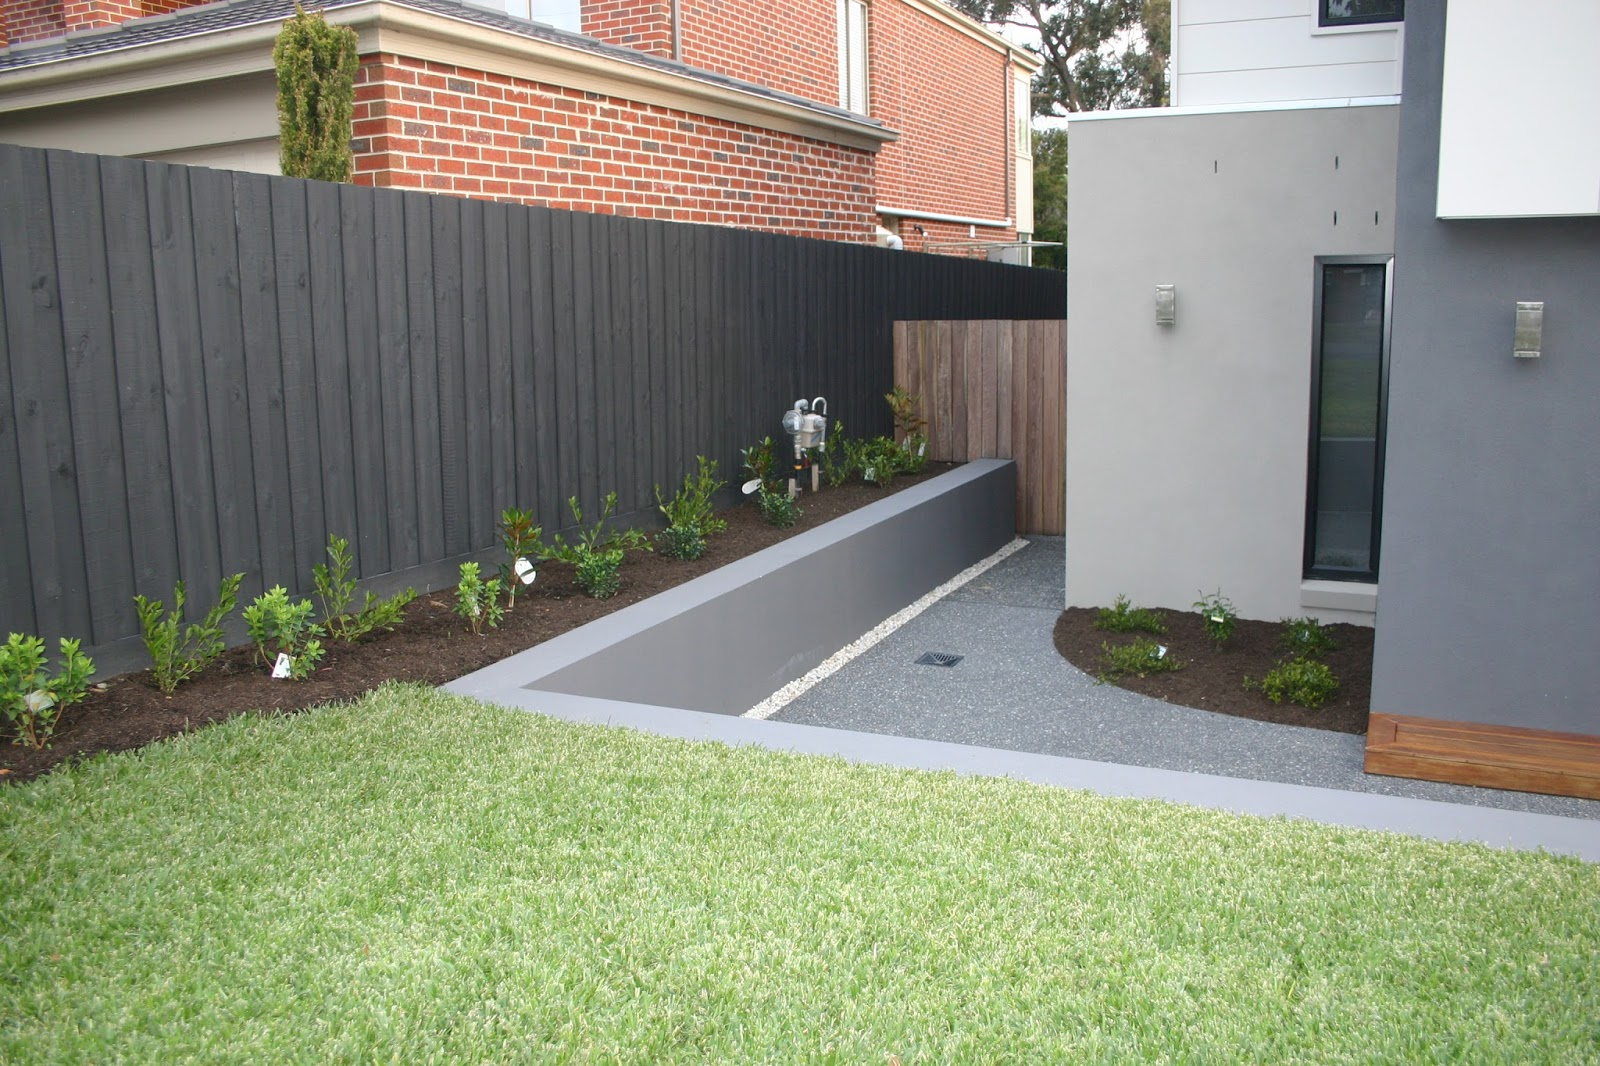 Cam kirsten building our new home with metricon where for Outdoor fence paint